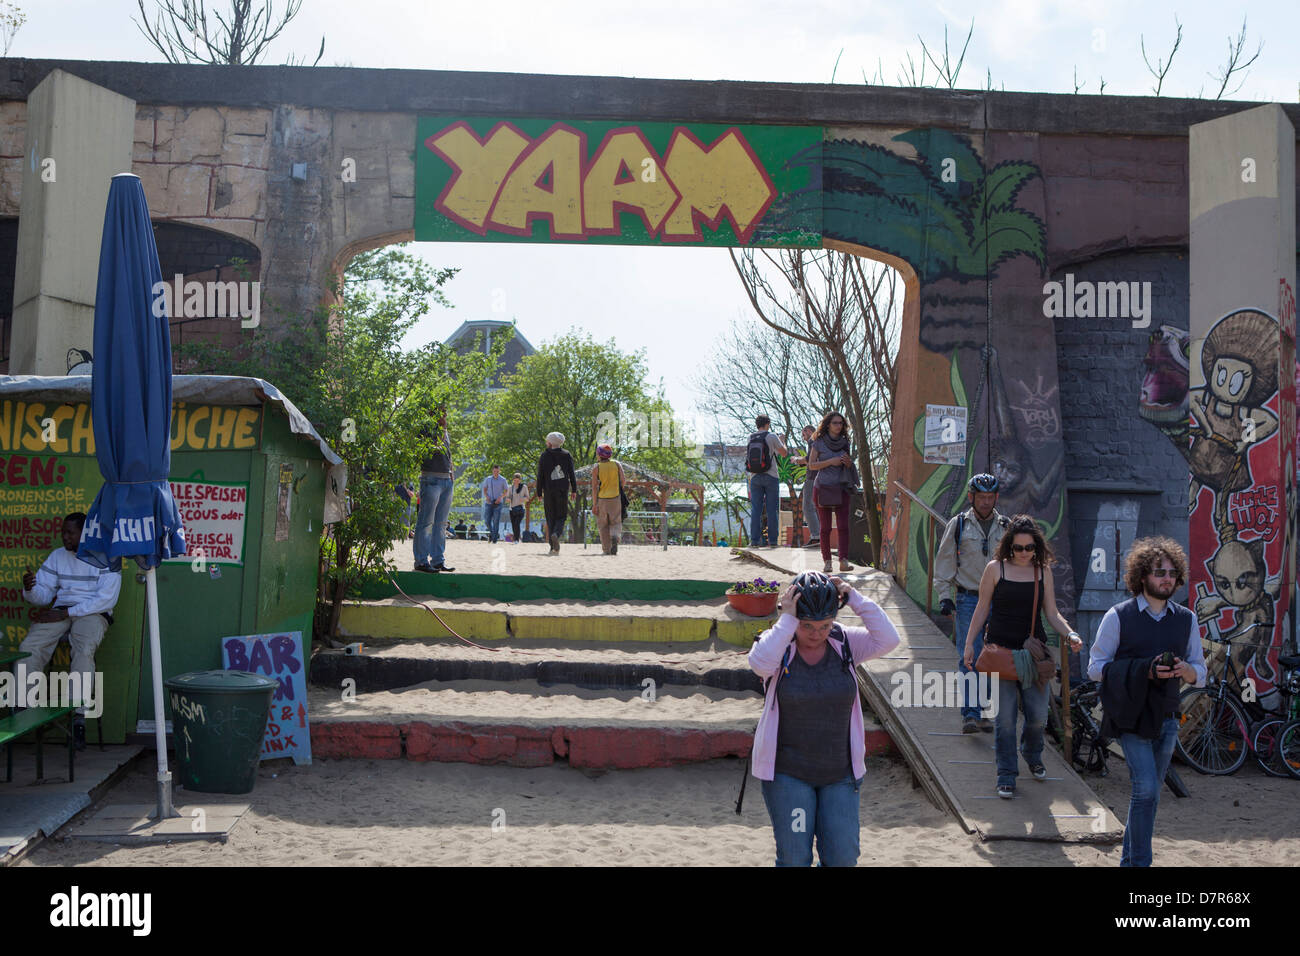 Young German people at Yaam. Yaam is one of Europe's most important places for youth culture and lifestyle - Stock Image